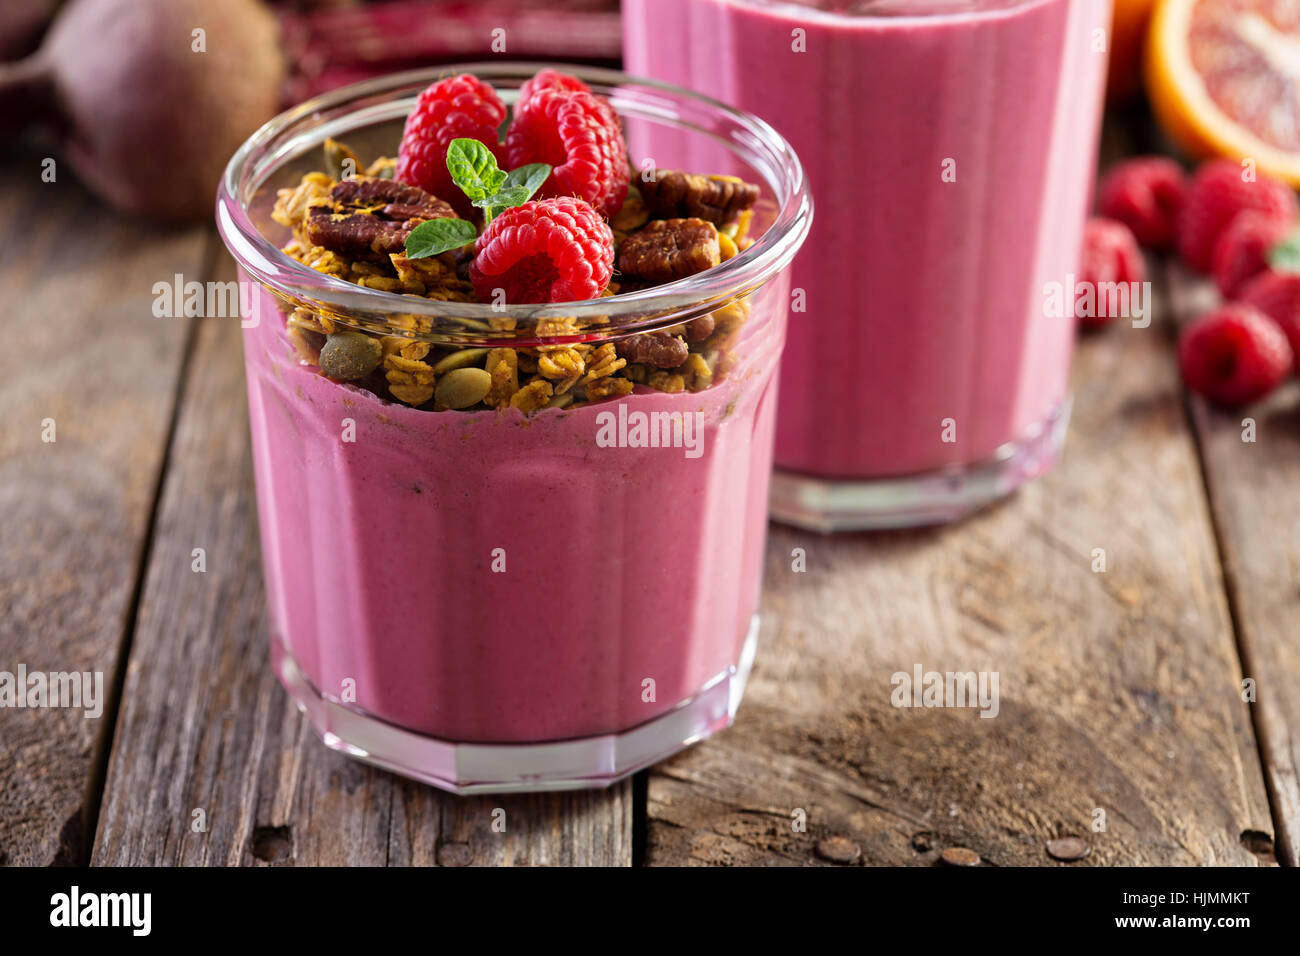 Healthy beetroot and raspberry smoothie - Stock Image